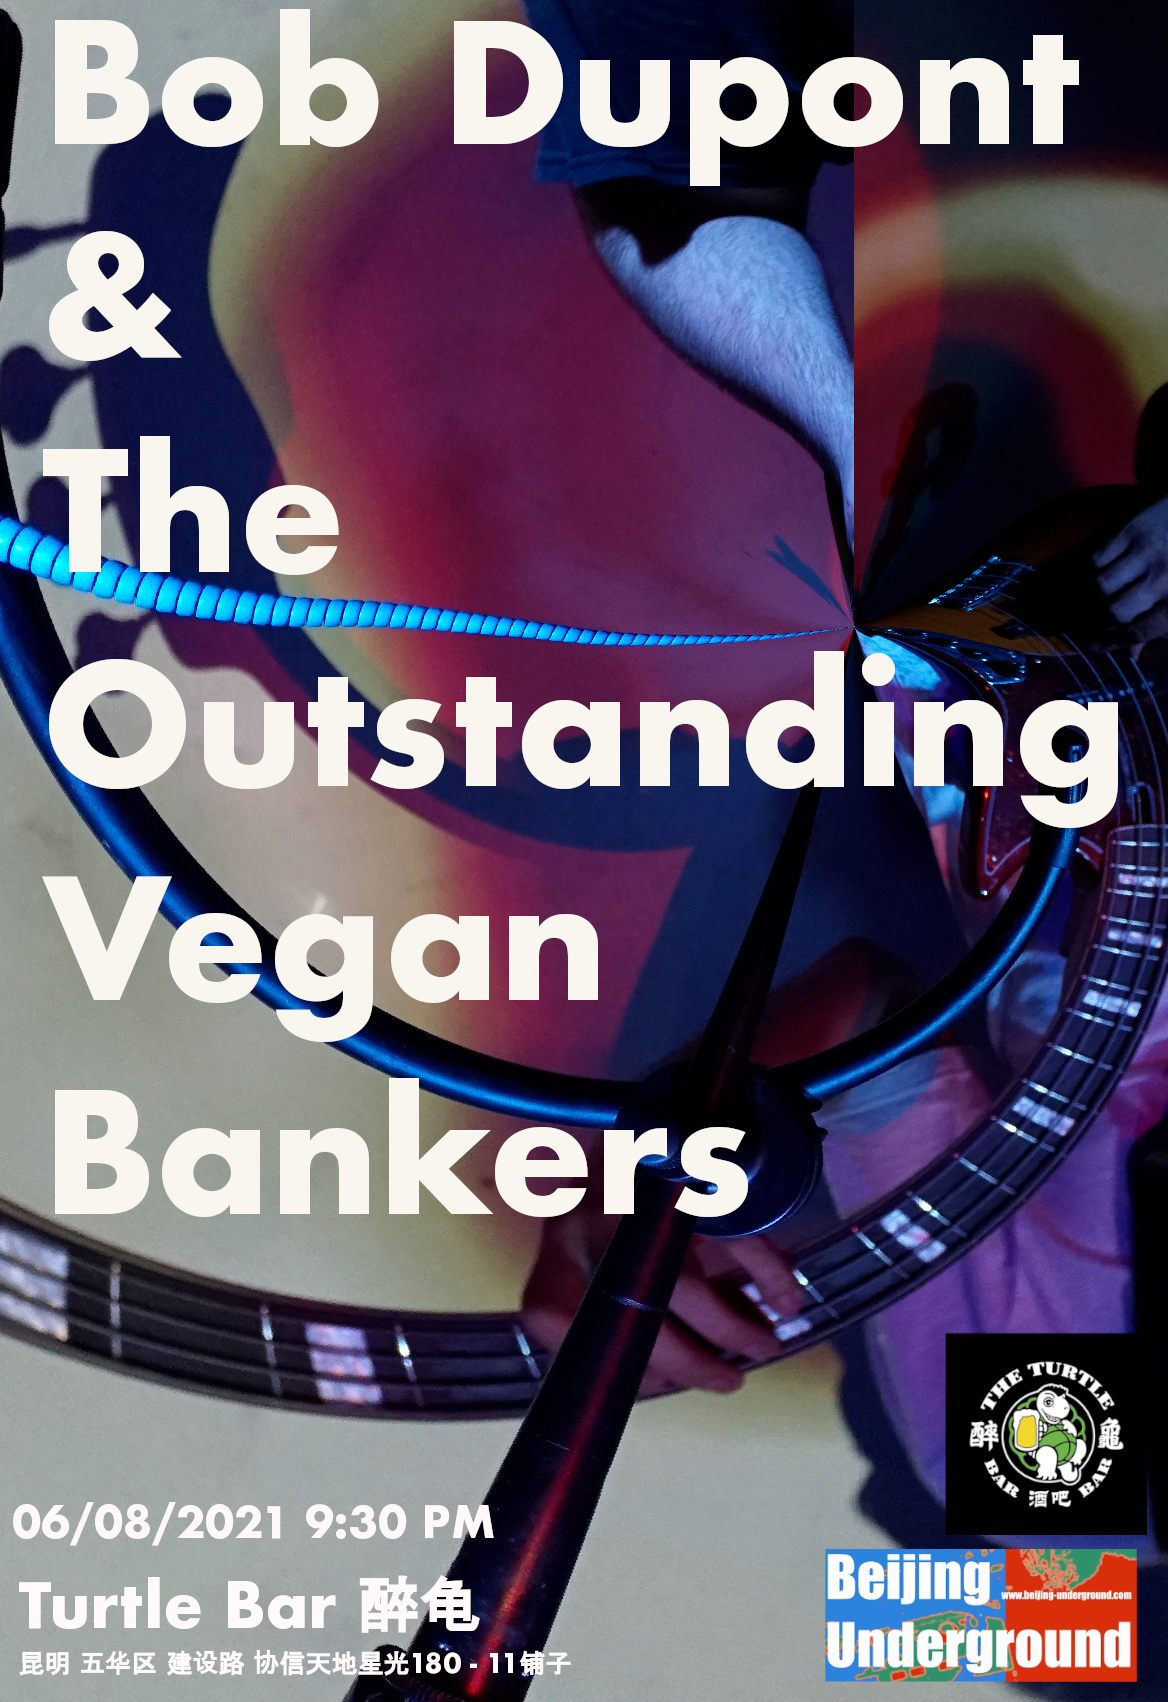 """""""Bob Dupont & The Outstanding Vegan Bankers"""" as well as Hip Hop band """"The Landlord Son"""" on tour in Yunnan with Beijing Underground. (cancelled for Covid reasons)"""